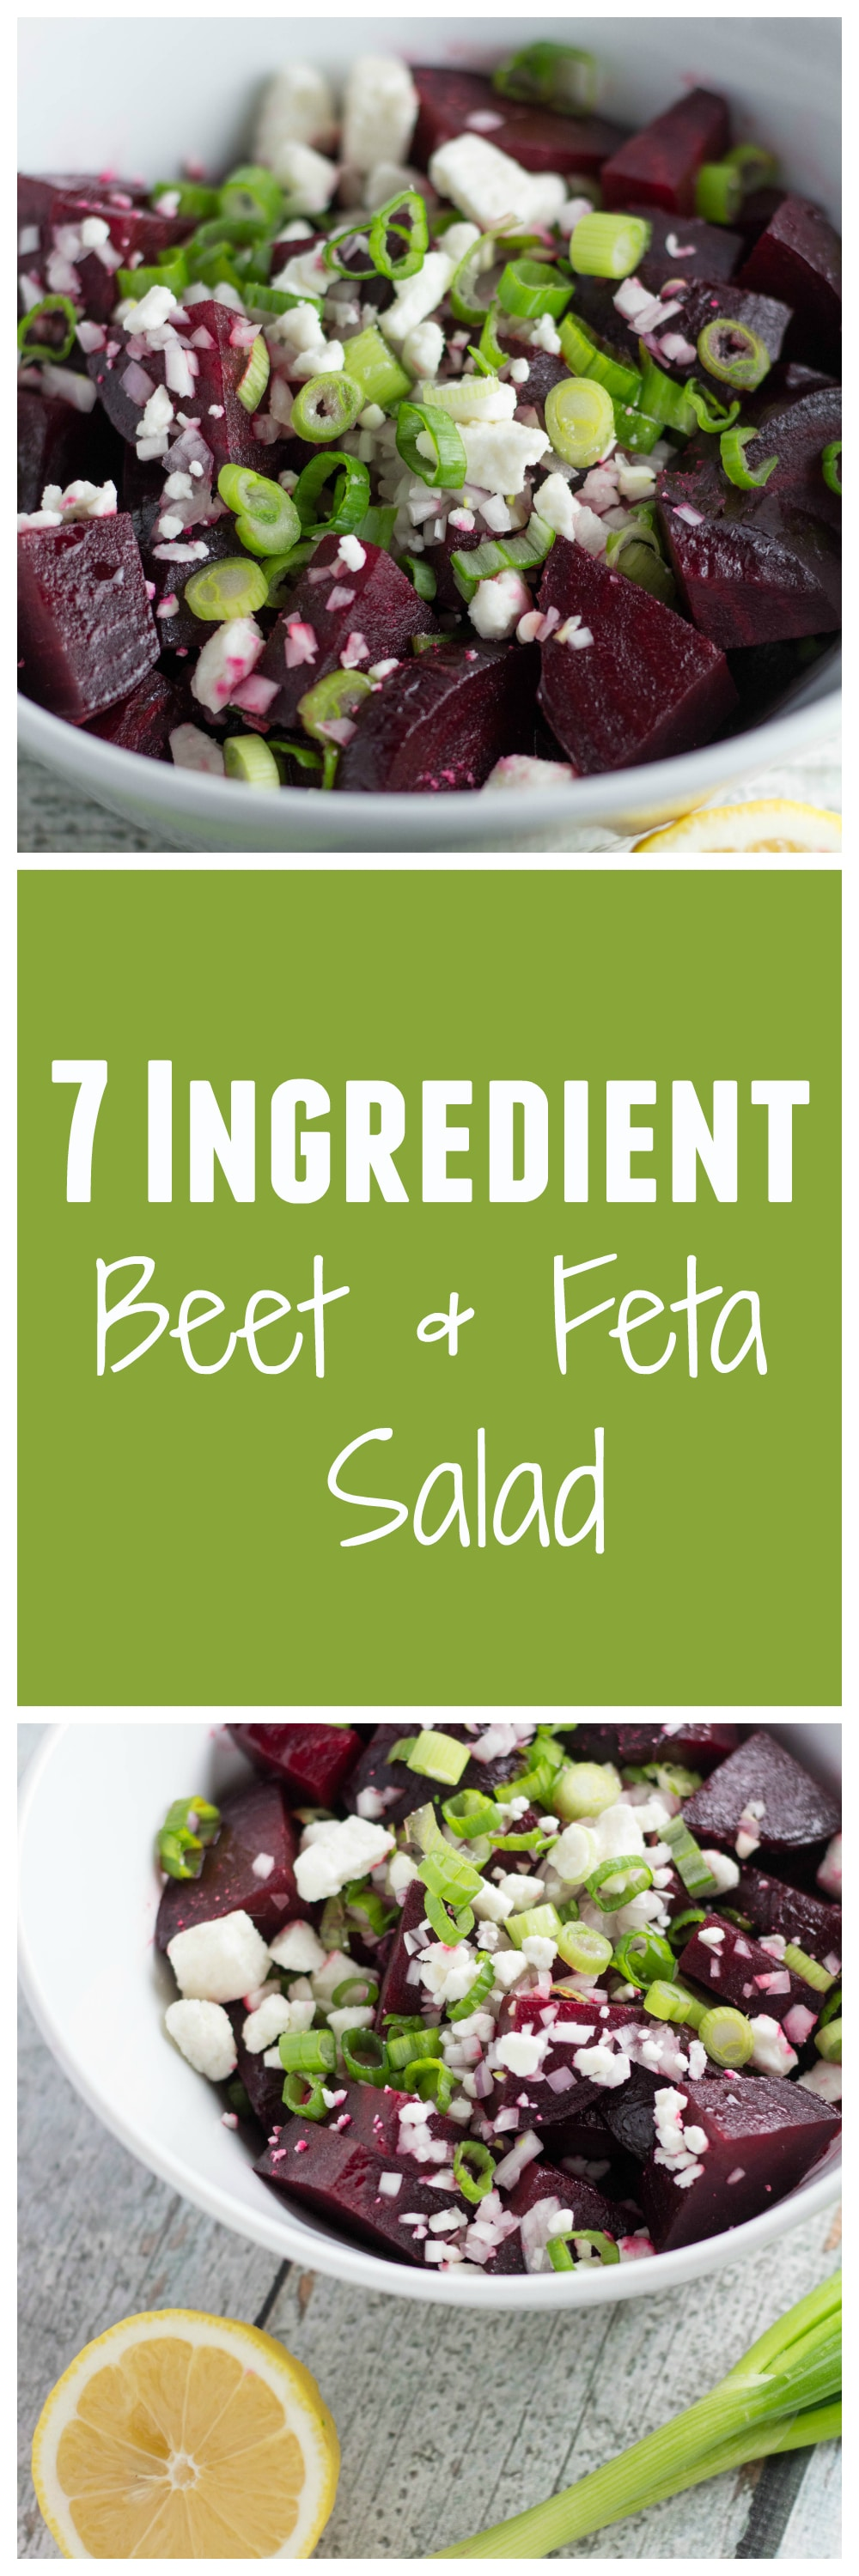 recipe: grilled beets with feta [27]